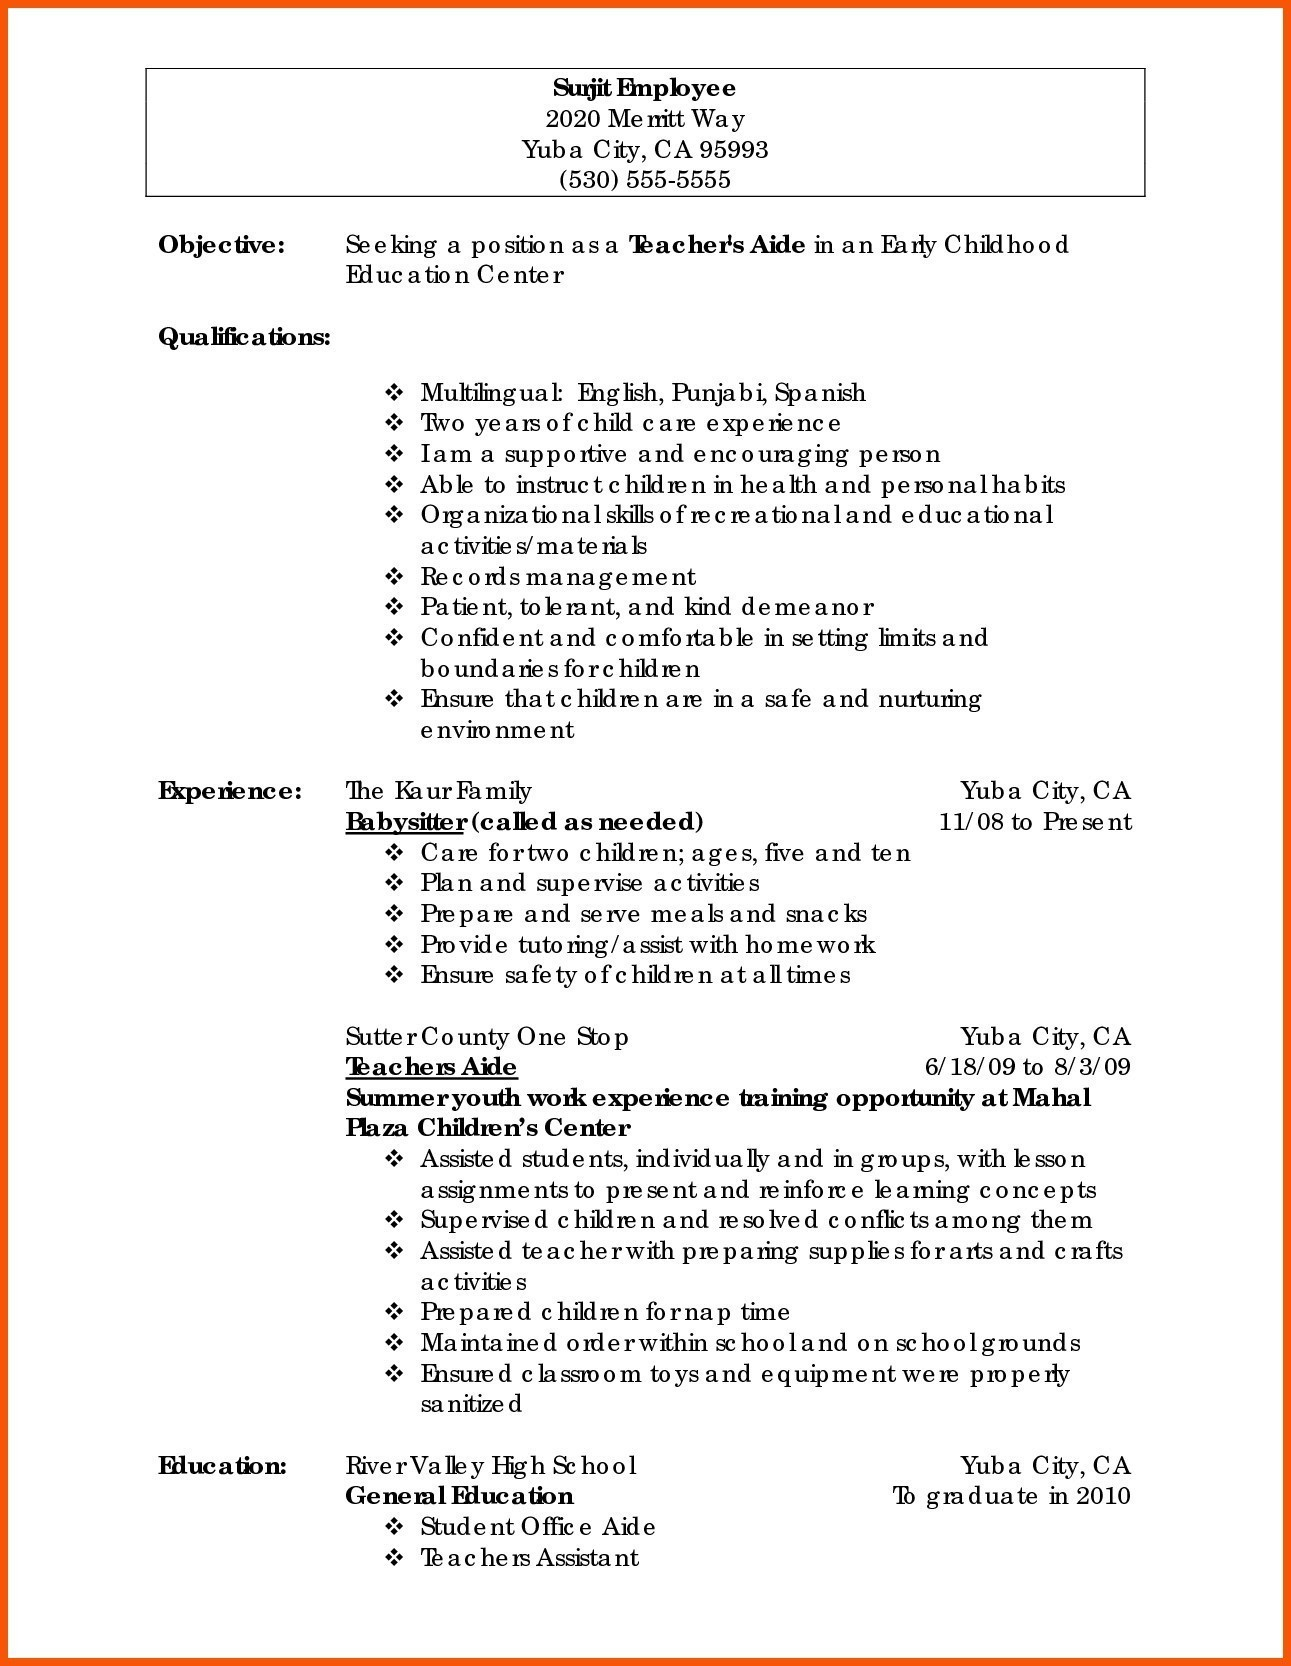 professional business resume Collection-Professional Business Resume 19 Professional Business Resume 4-g